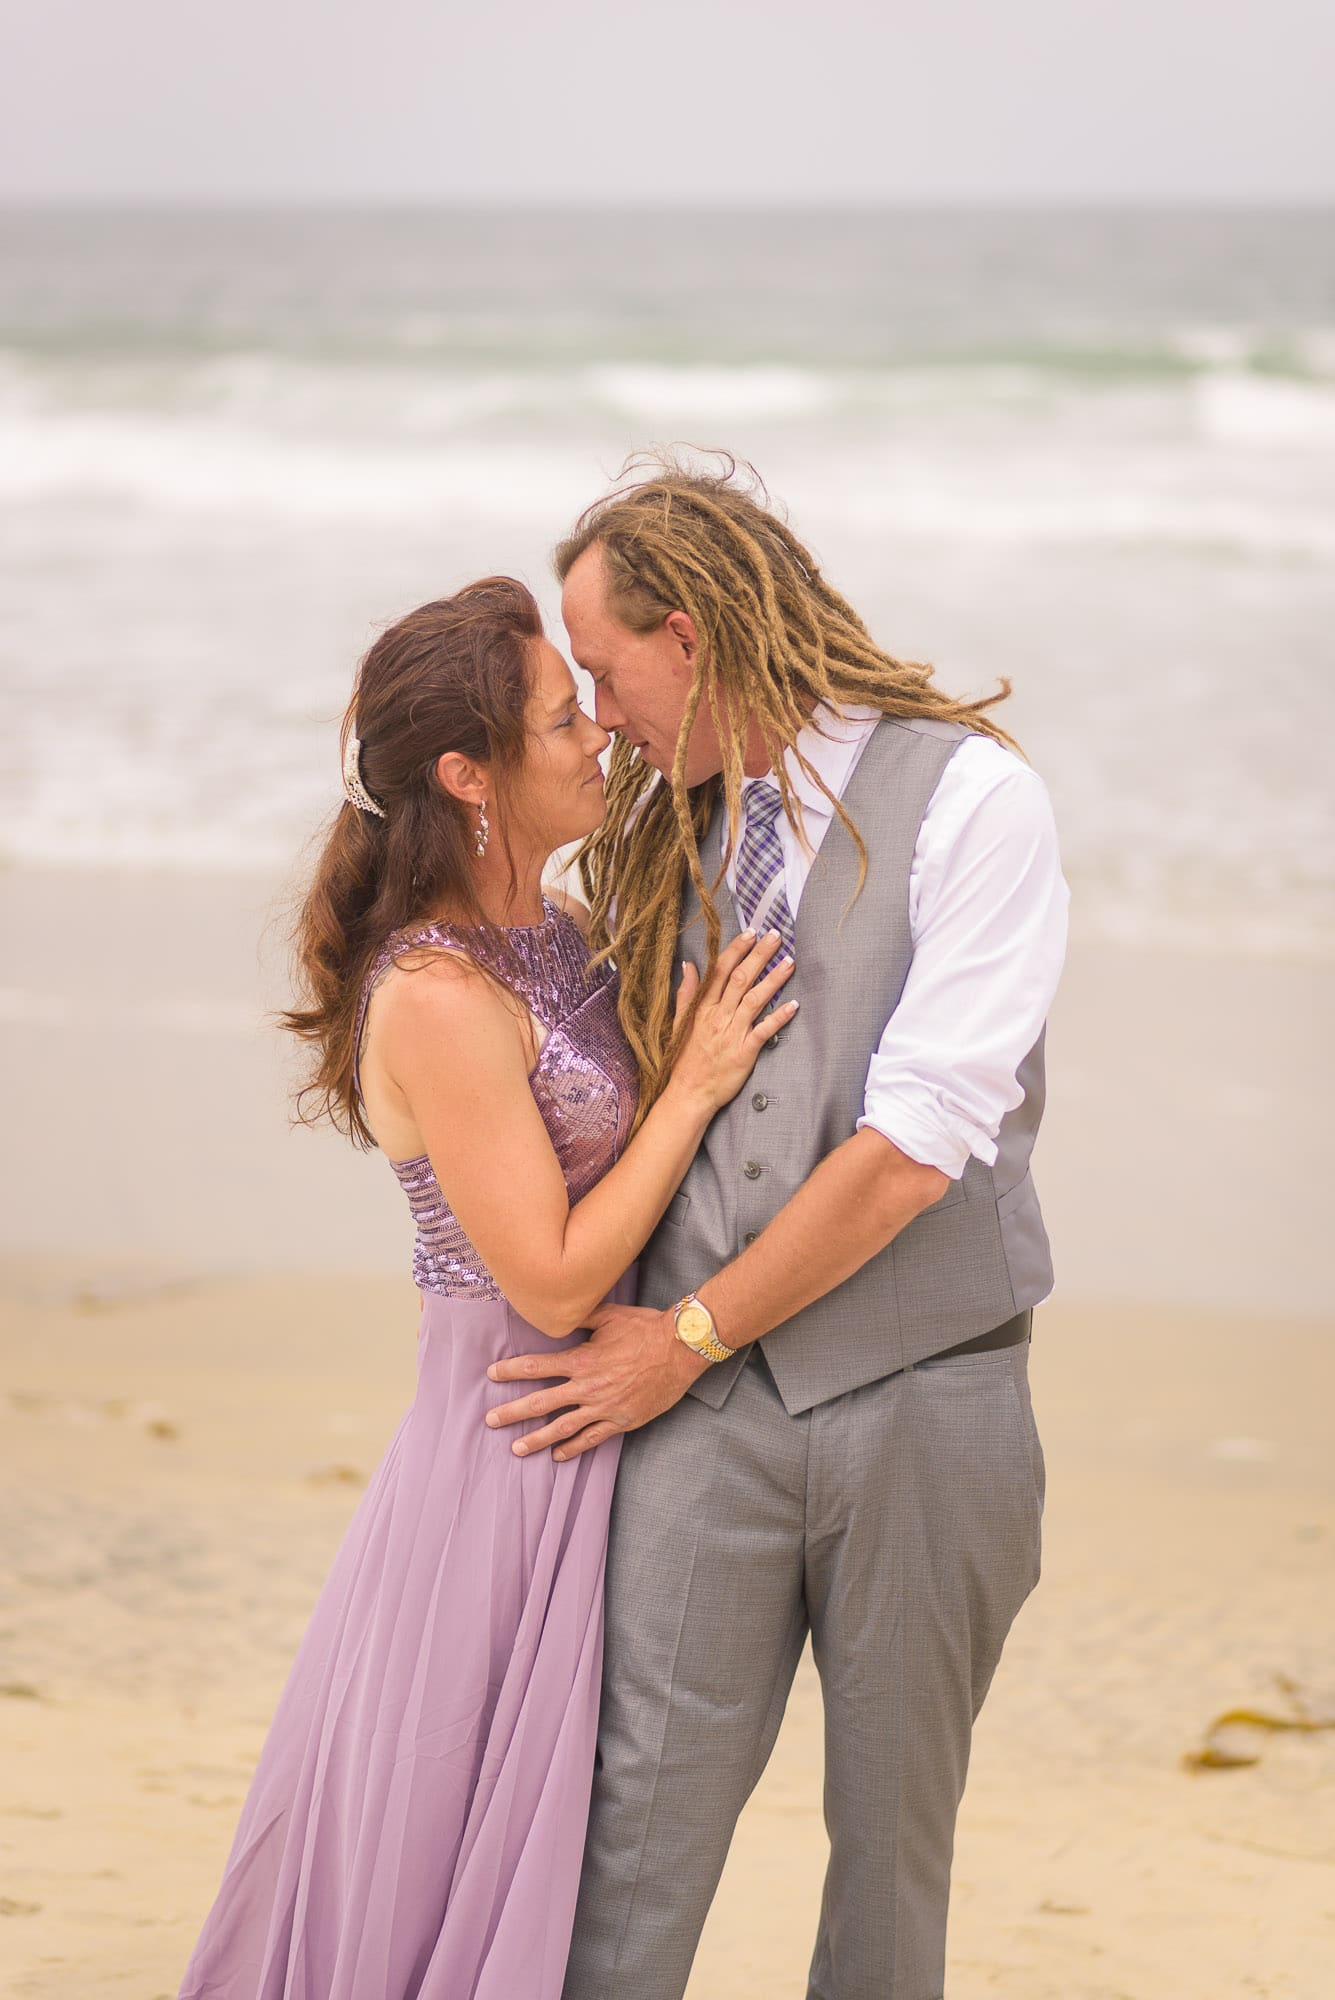 012_Alan_and_Heidi_Brianne_Nathan_San_Diego_Elopement